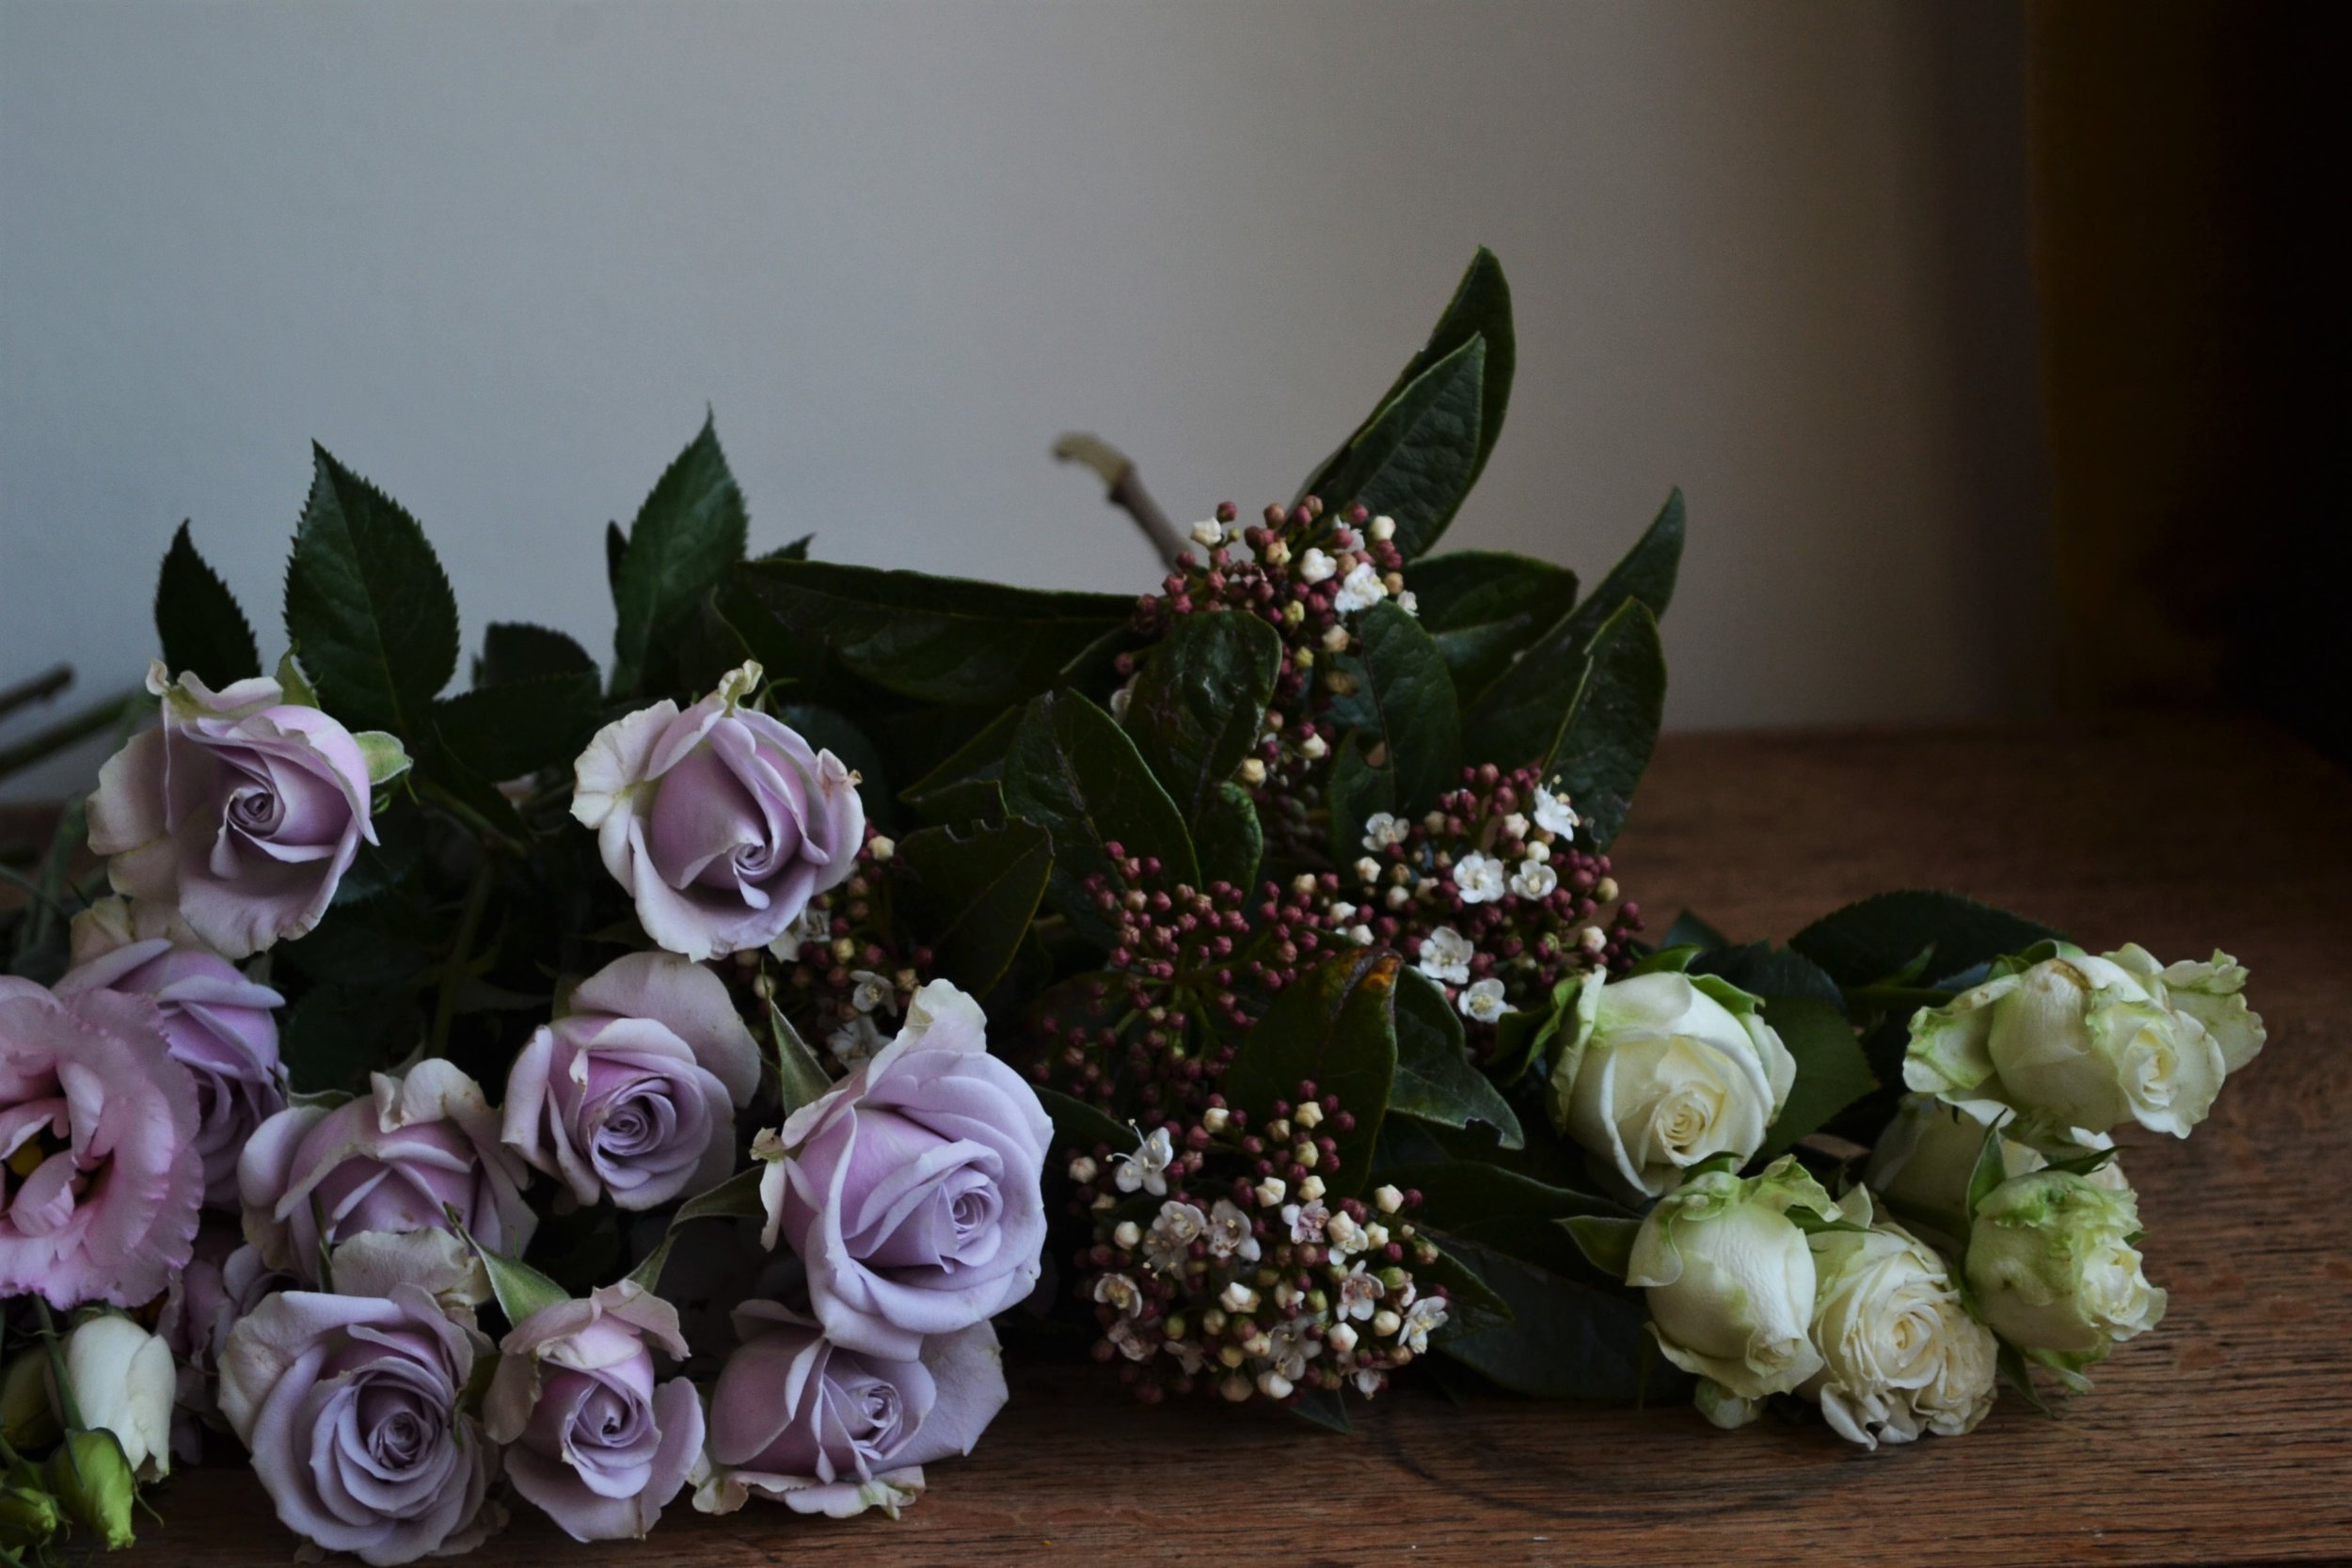 Webb-and-Farrer-Brighton-Florist-Sussex-Wedding-Flowers-Blush-Pink-Burgundy-Bridal-Bouquet (2).JPG